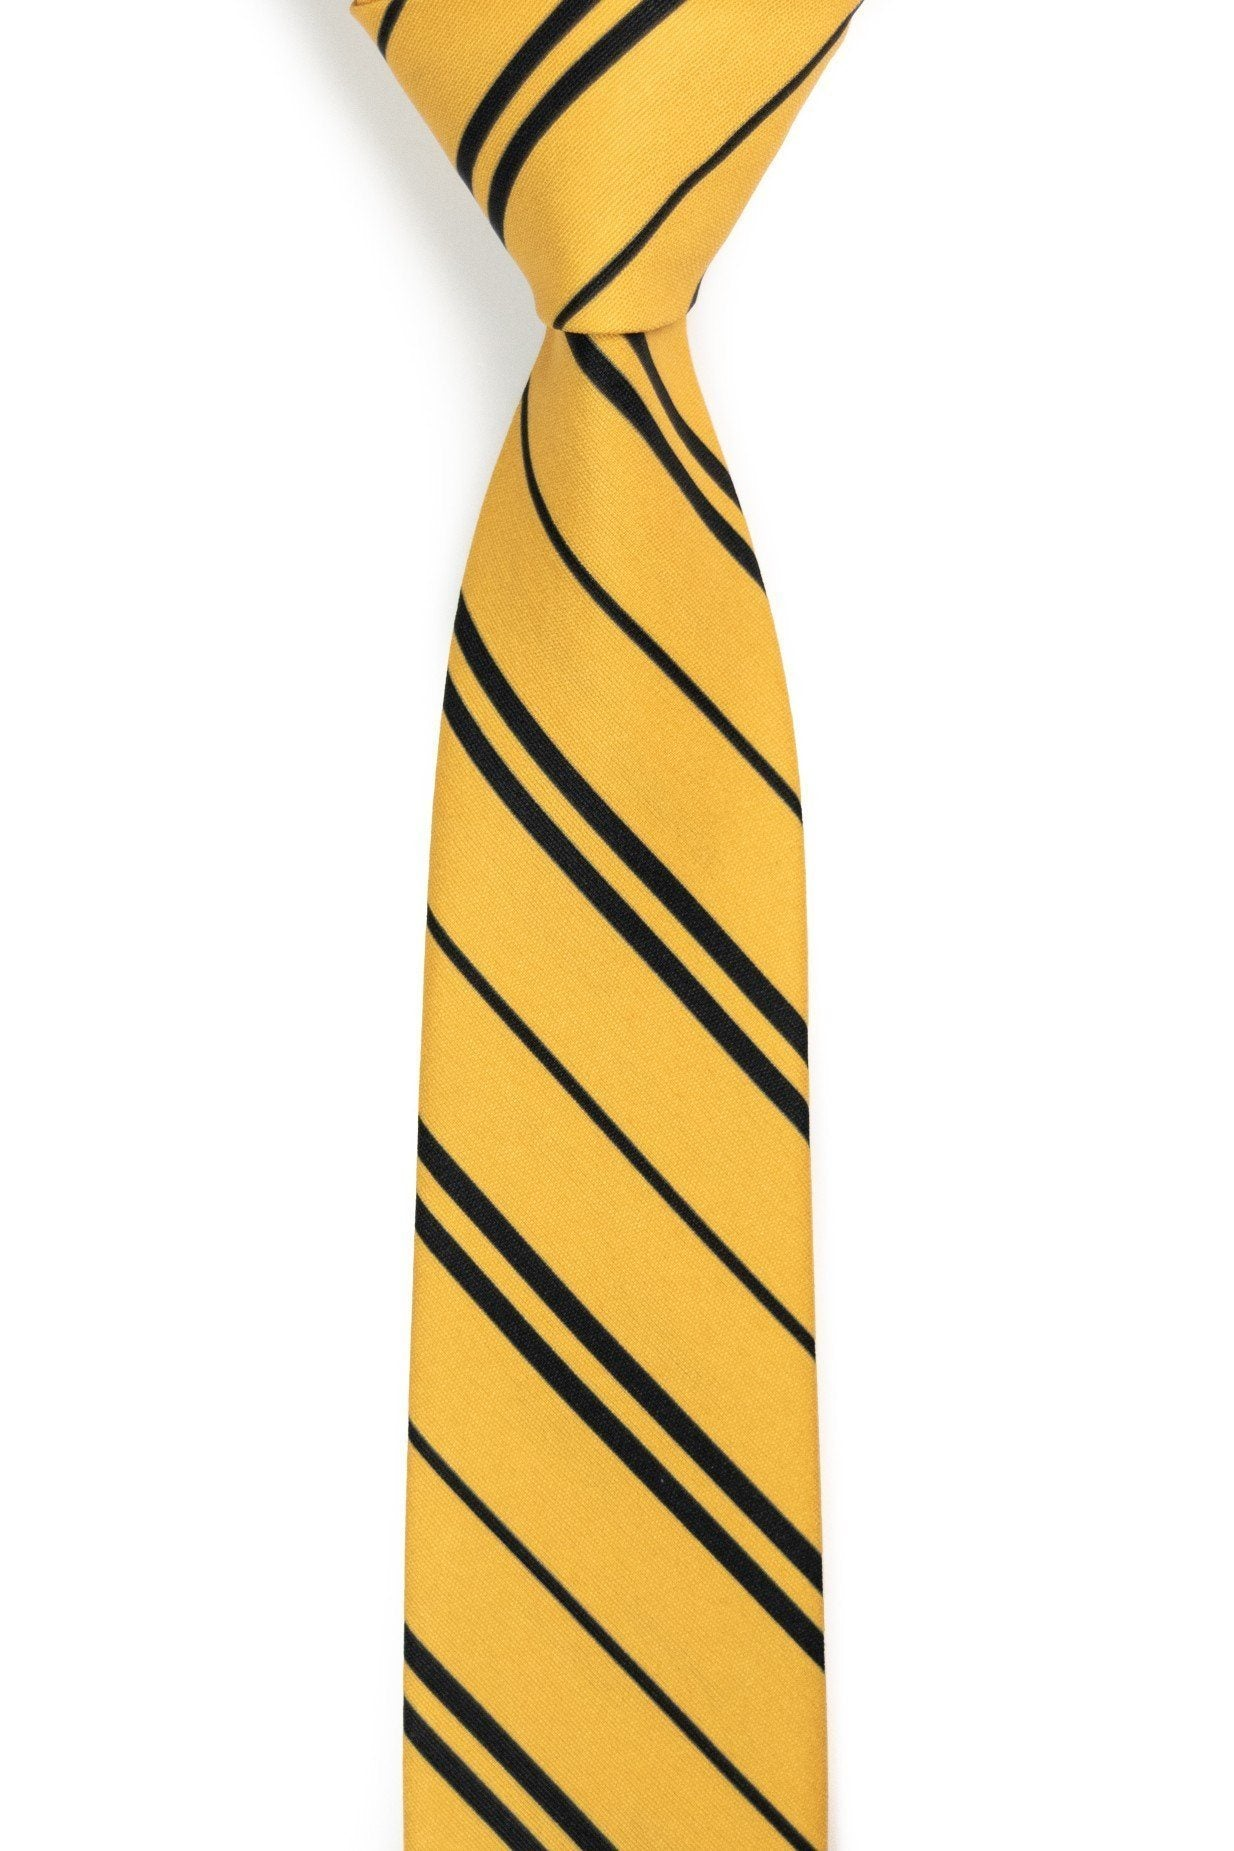 Huffle's Puff - Black and Yellow Tie